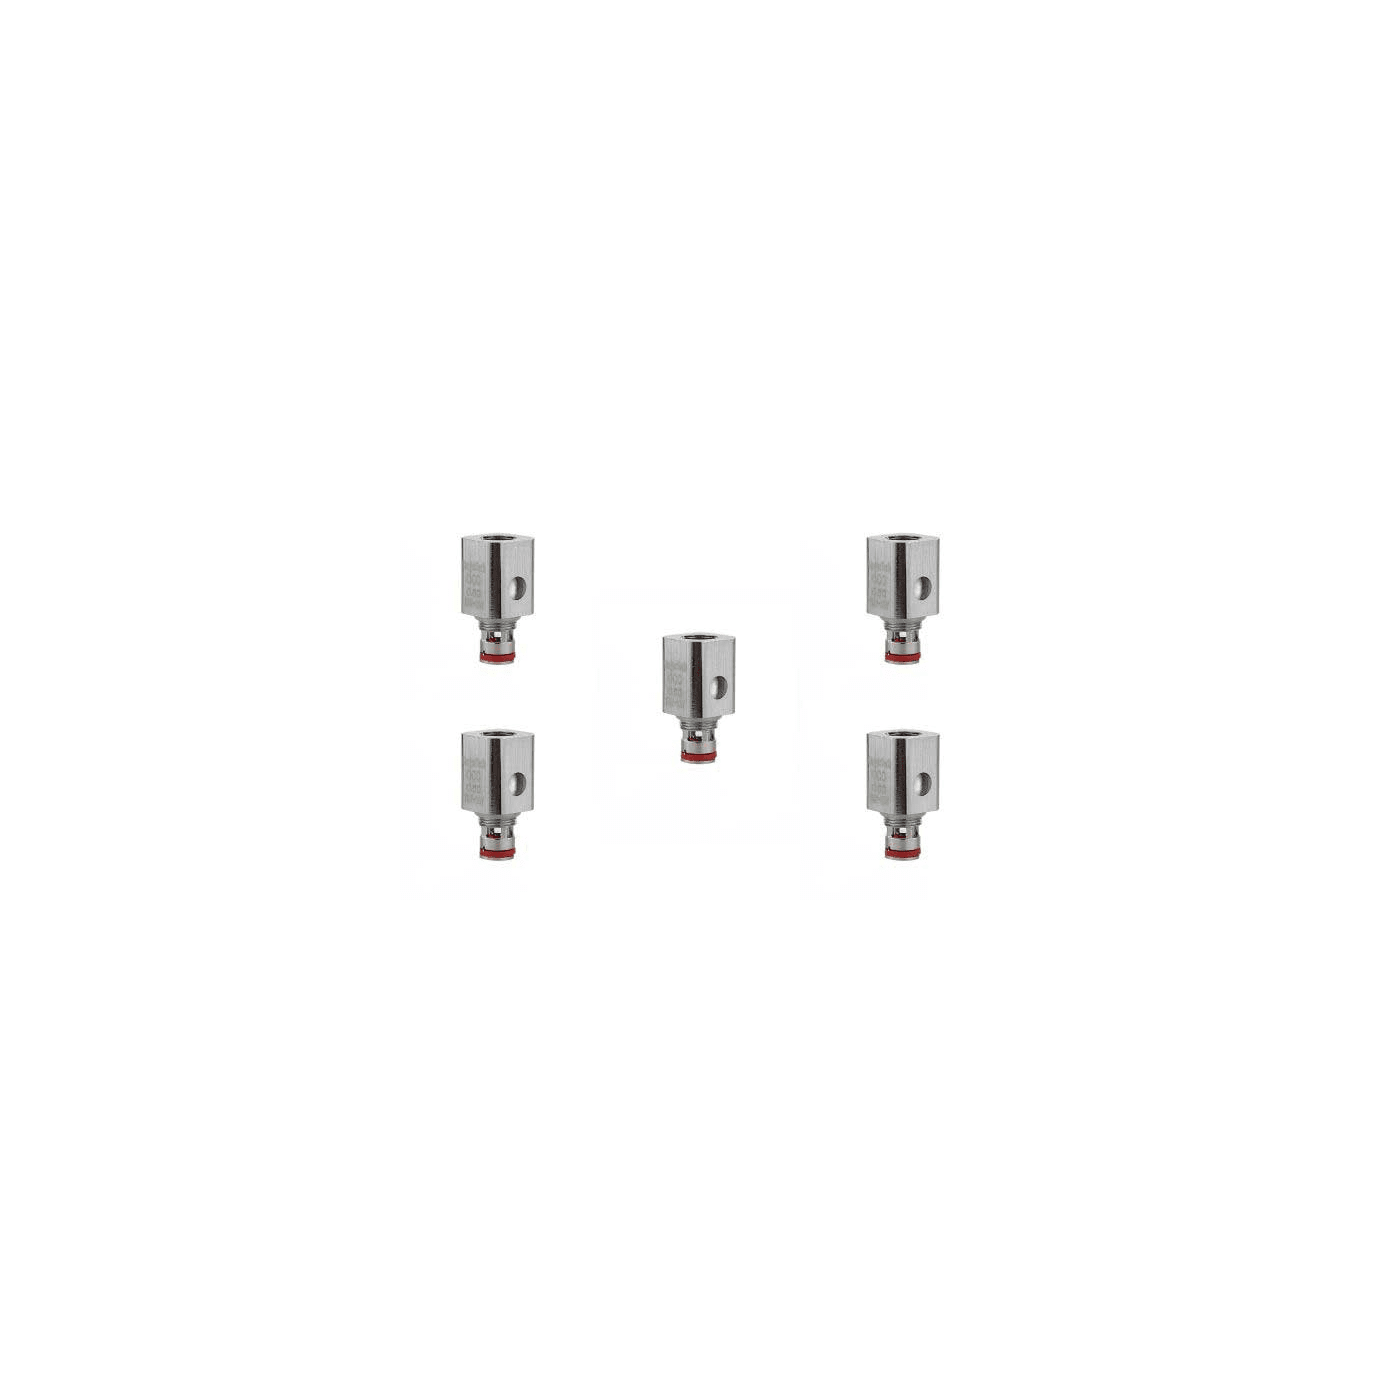 Kanger OCC Subtank Vertical Coil Replacement coil - 5 Pack